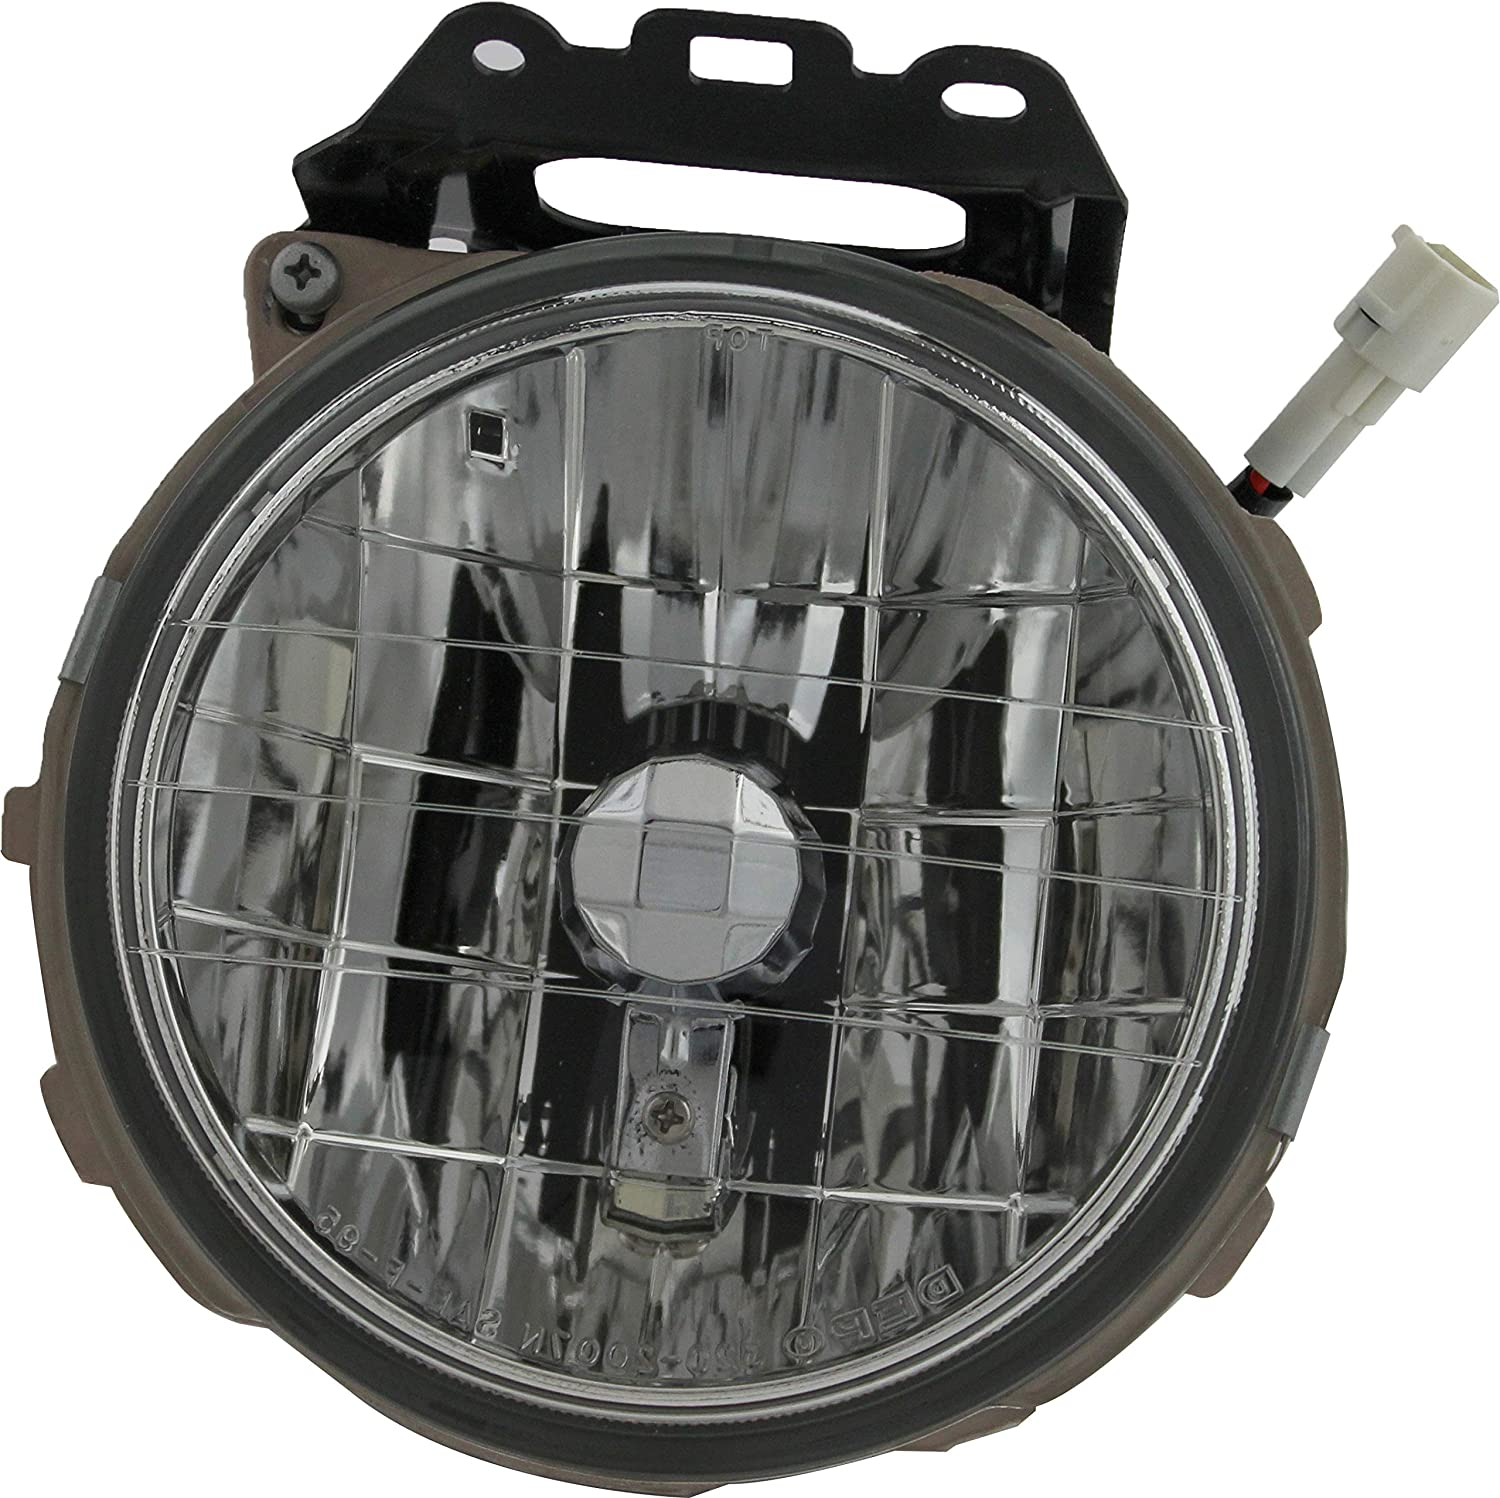 JP Auto 本店 Front Fog ランキング総合1位 Light Lamp Outback Baja With Subaru Compatible